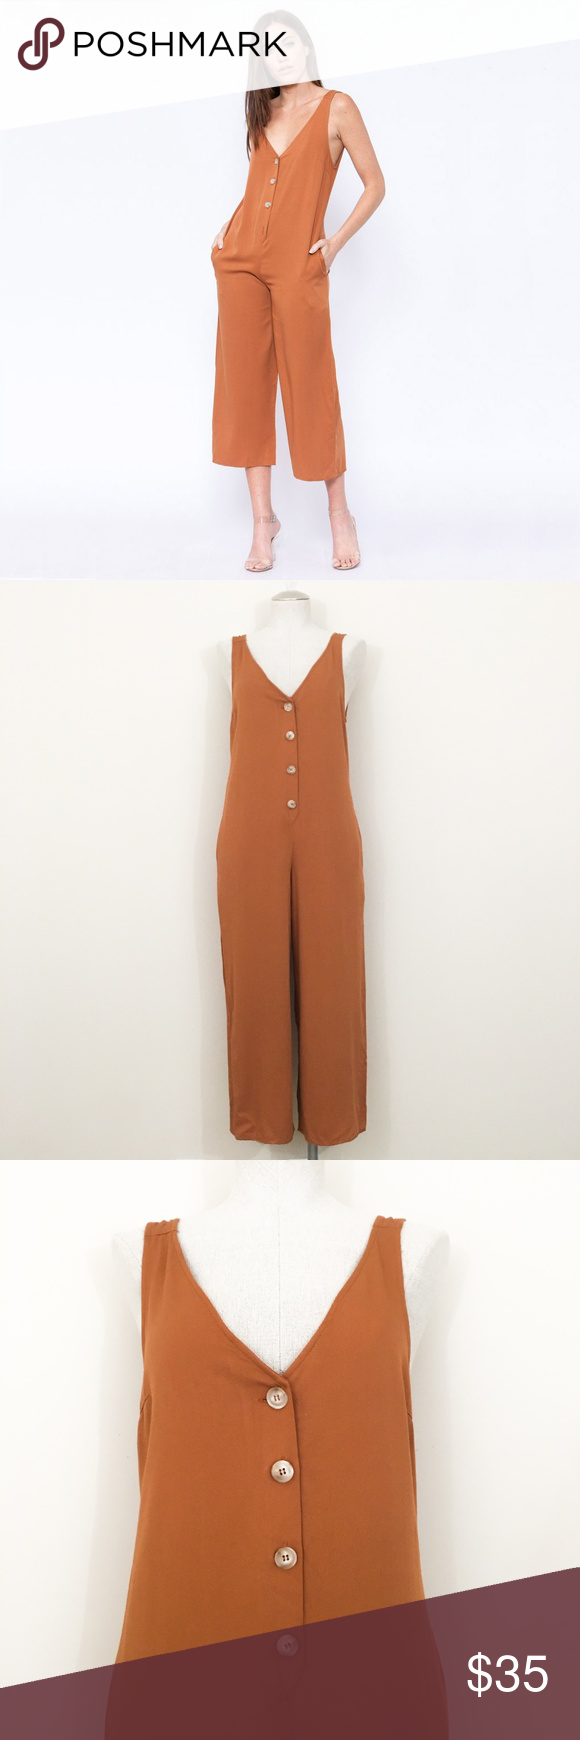 77c0d326bbf3 Sadie   Sage Jeanette Jumpsuit Sadie   Sage Jeanette Jumpsuit Mustard  Yellow   Orange This jumpsuit falls below the knee and features a button  down placket.